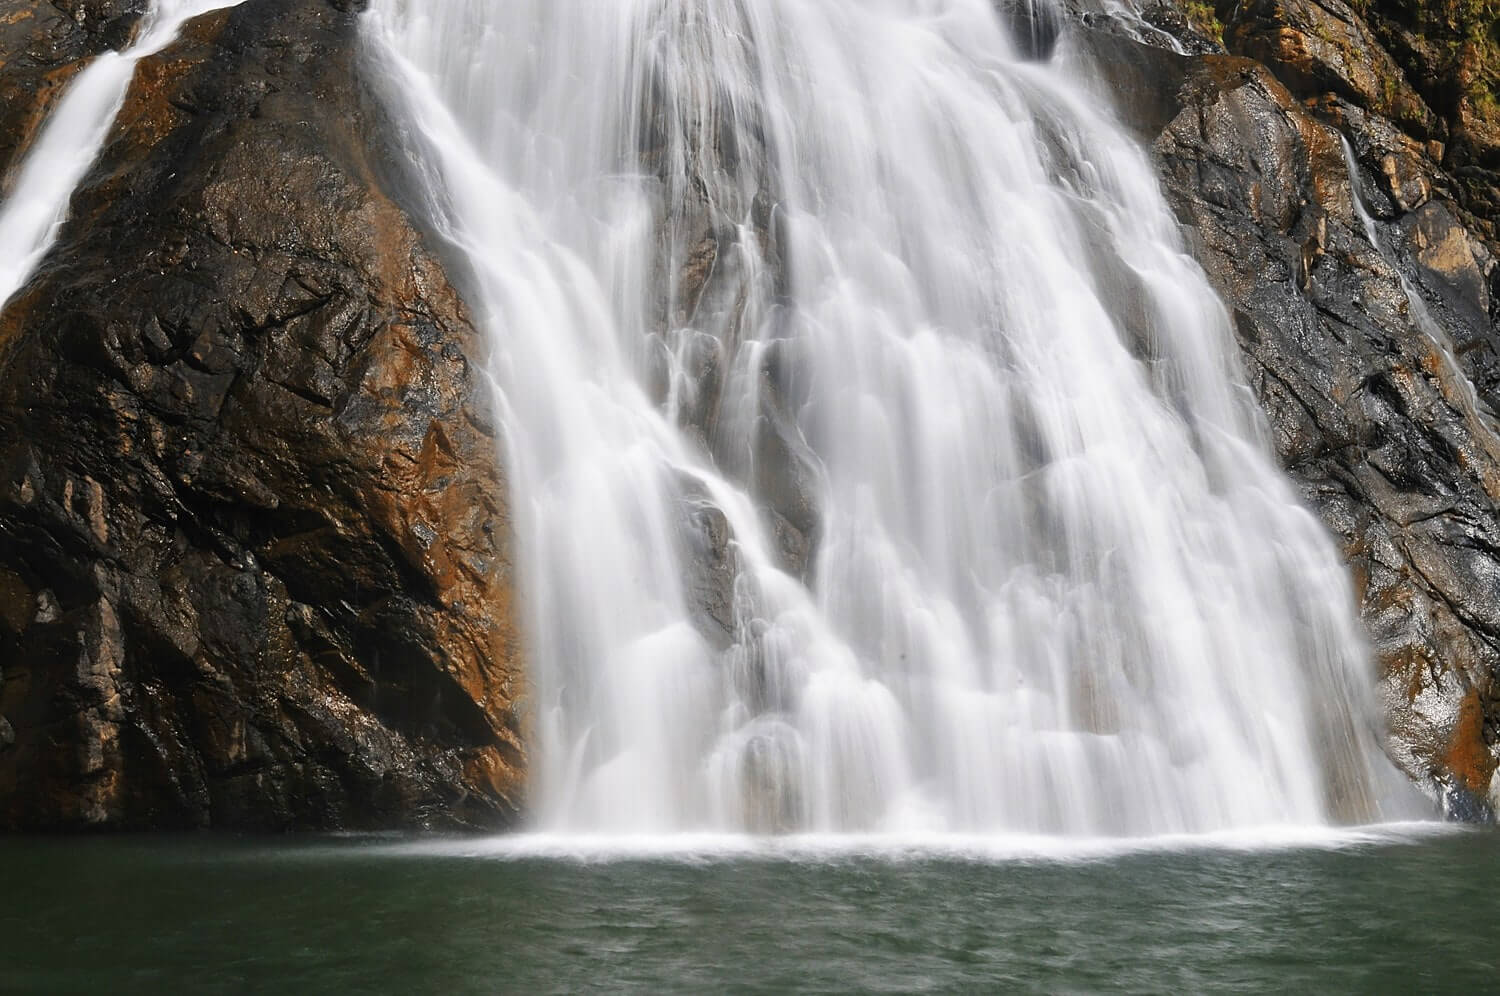 10 Waterfalls In Goa - From Popular Names To Offbeat Ones